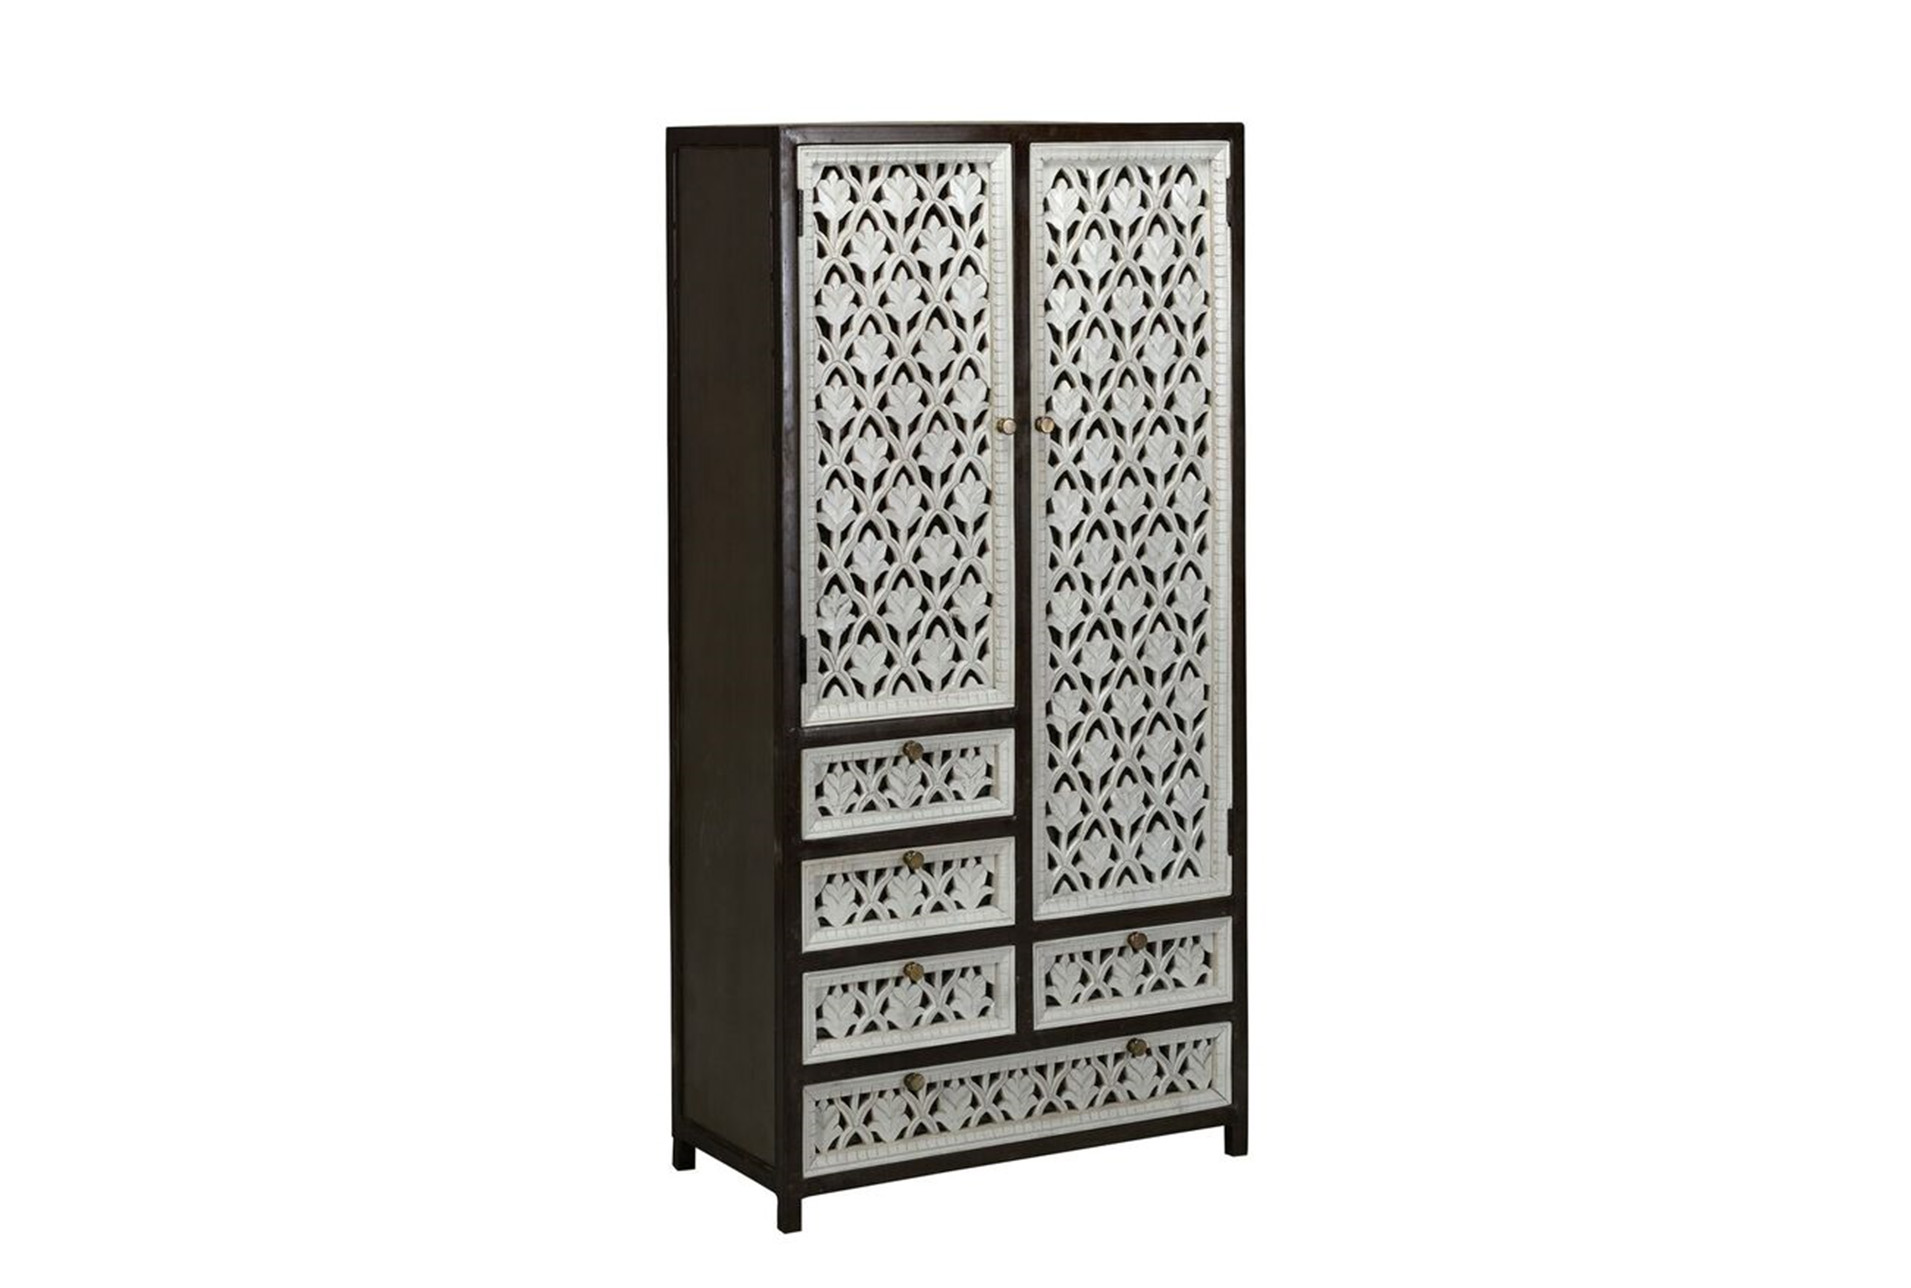 Beau Perforated Doors Tall Cabinet (Qty: 1) Has Been Successfully Added To Your  Cart.